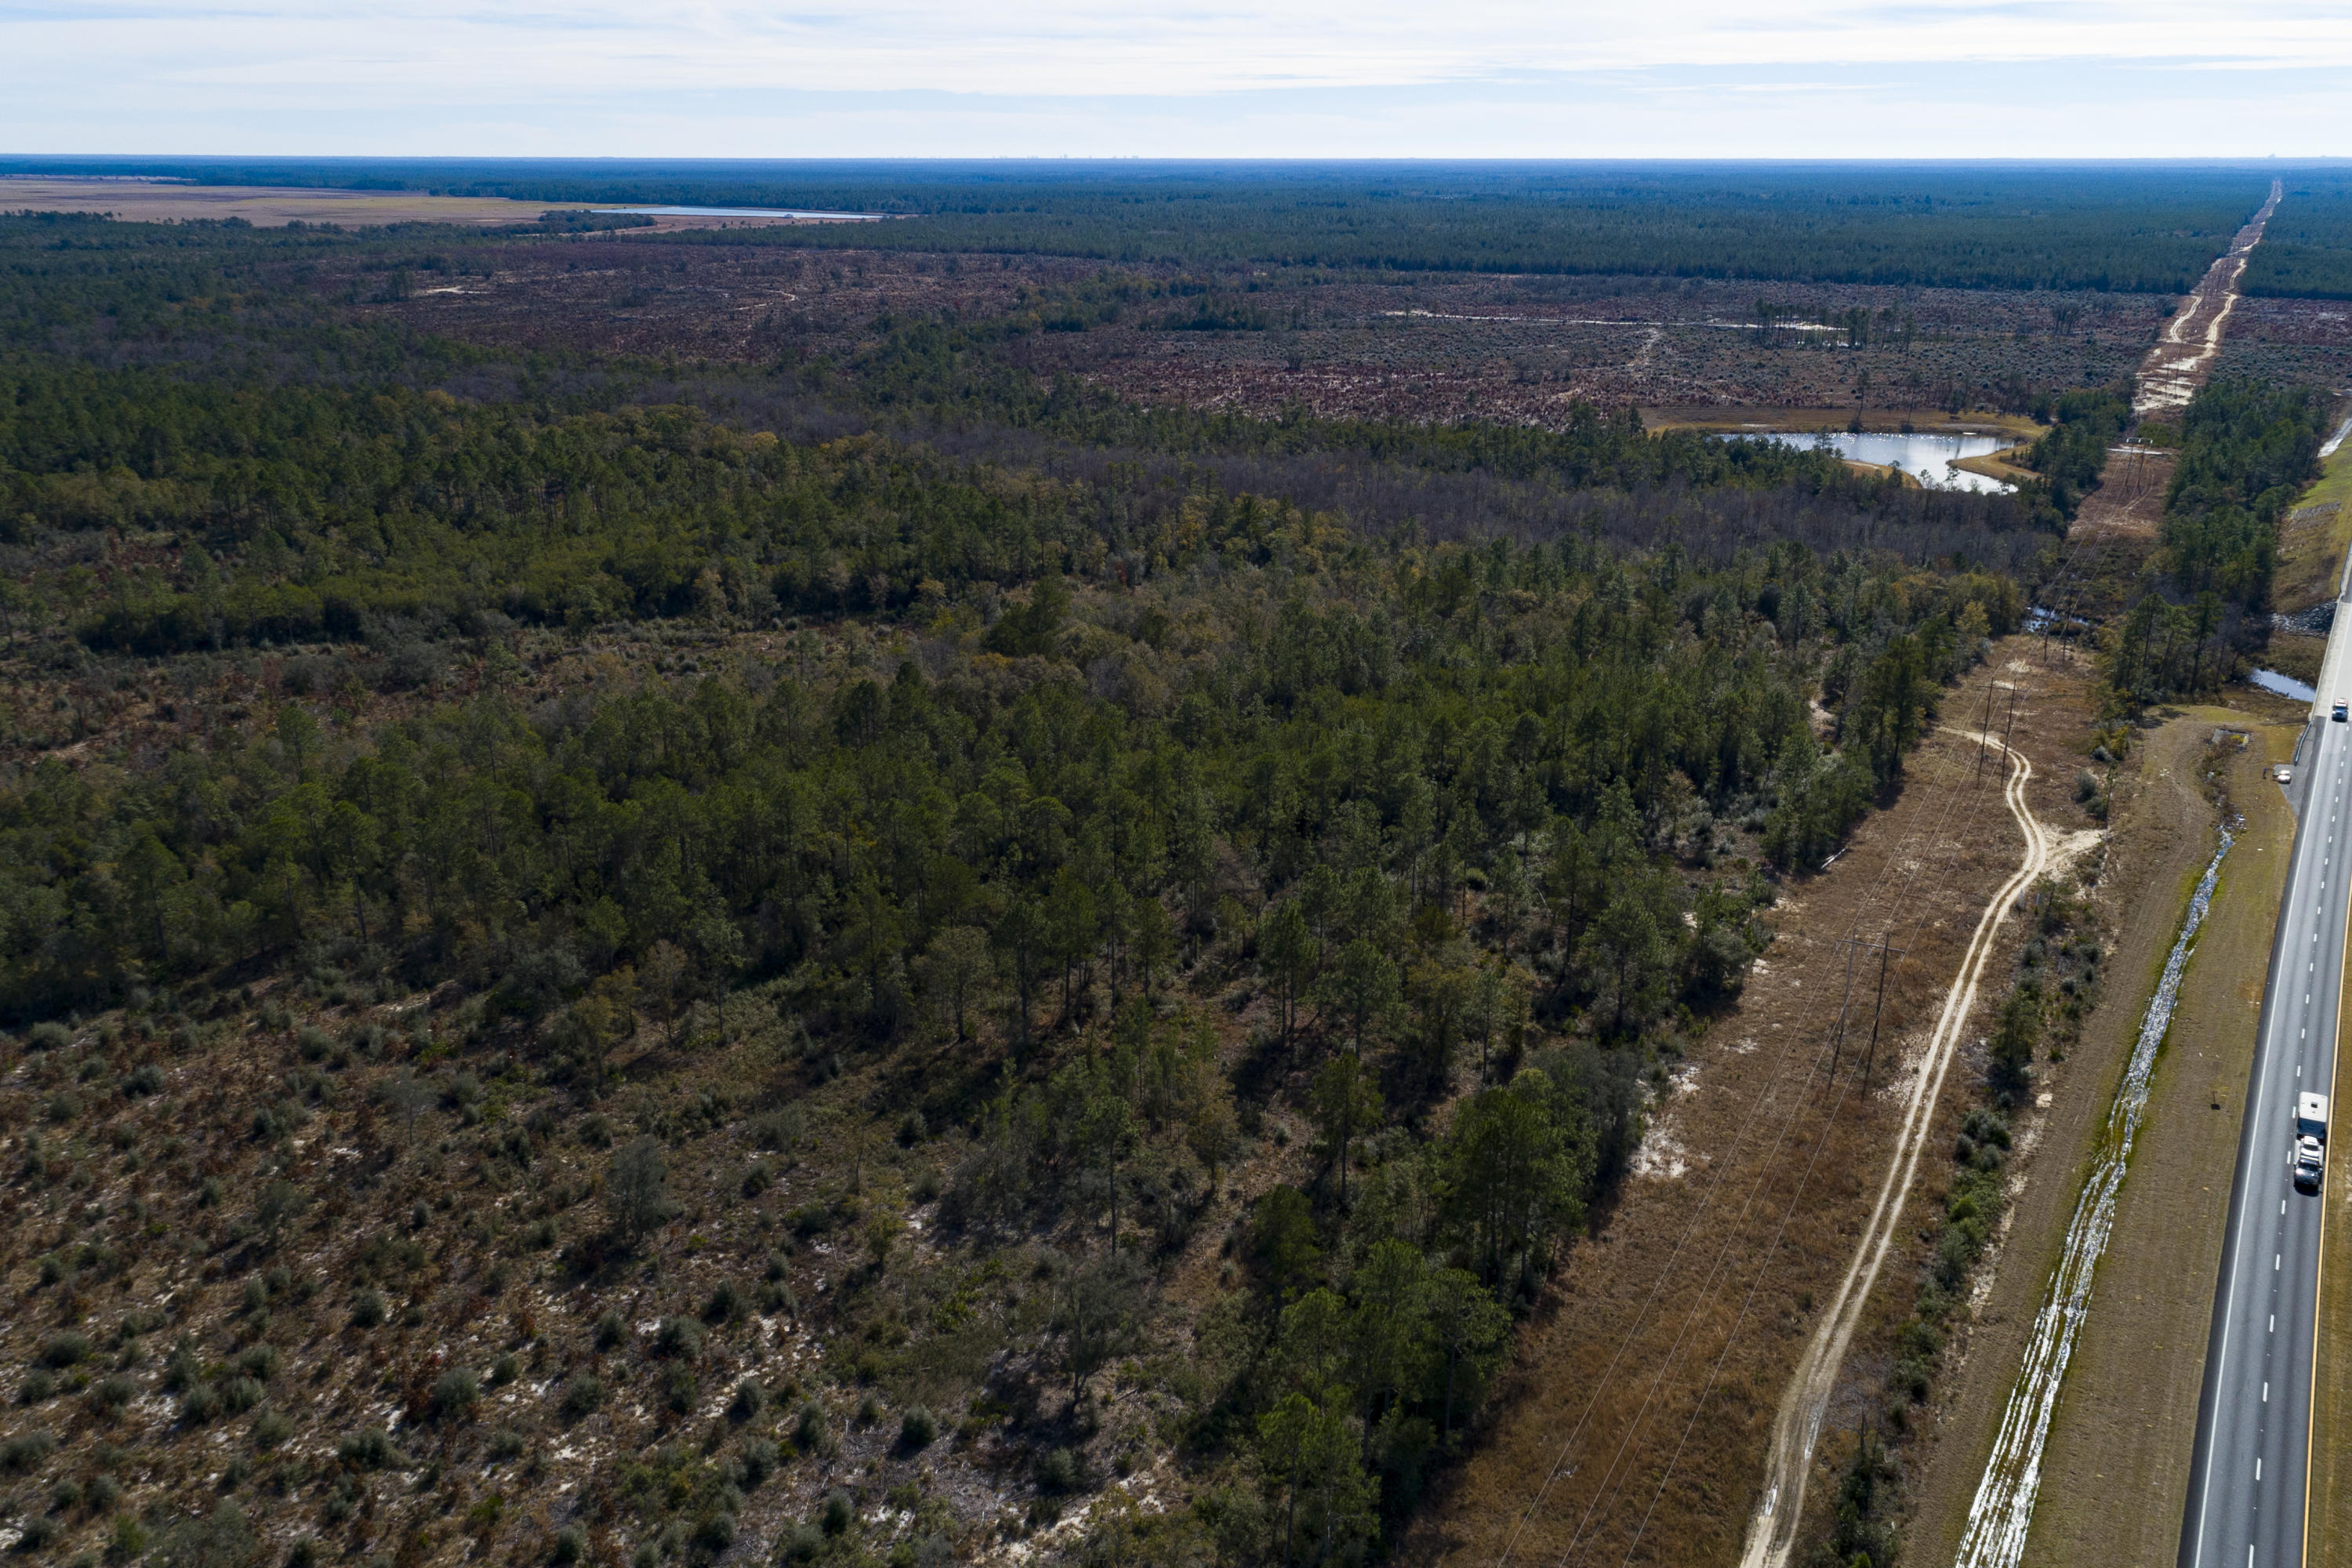 880 acres Highway 331,Freeport,Florida 32439,Highway 331,20131126143817002353000000